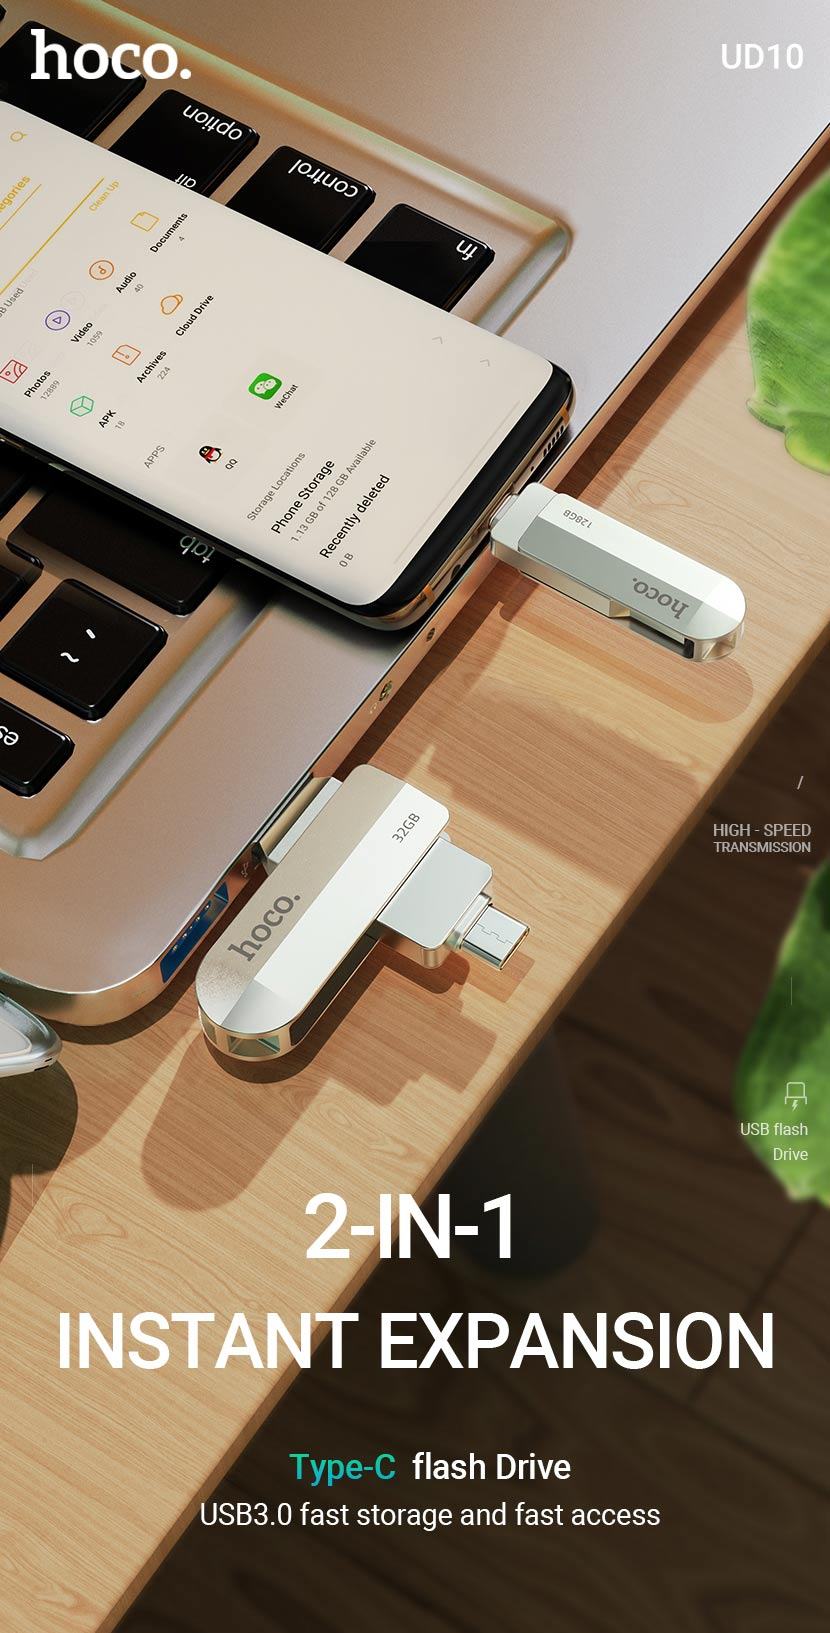 hoco news ud10 wise type c usb flash drive expansion en